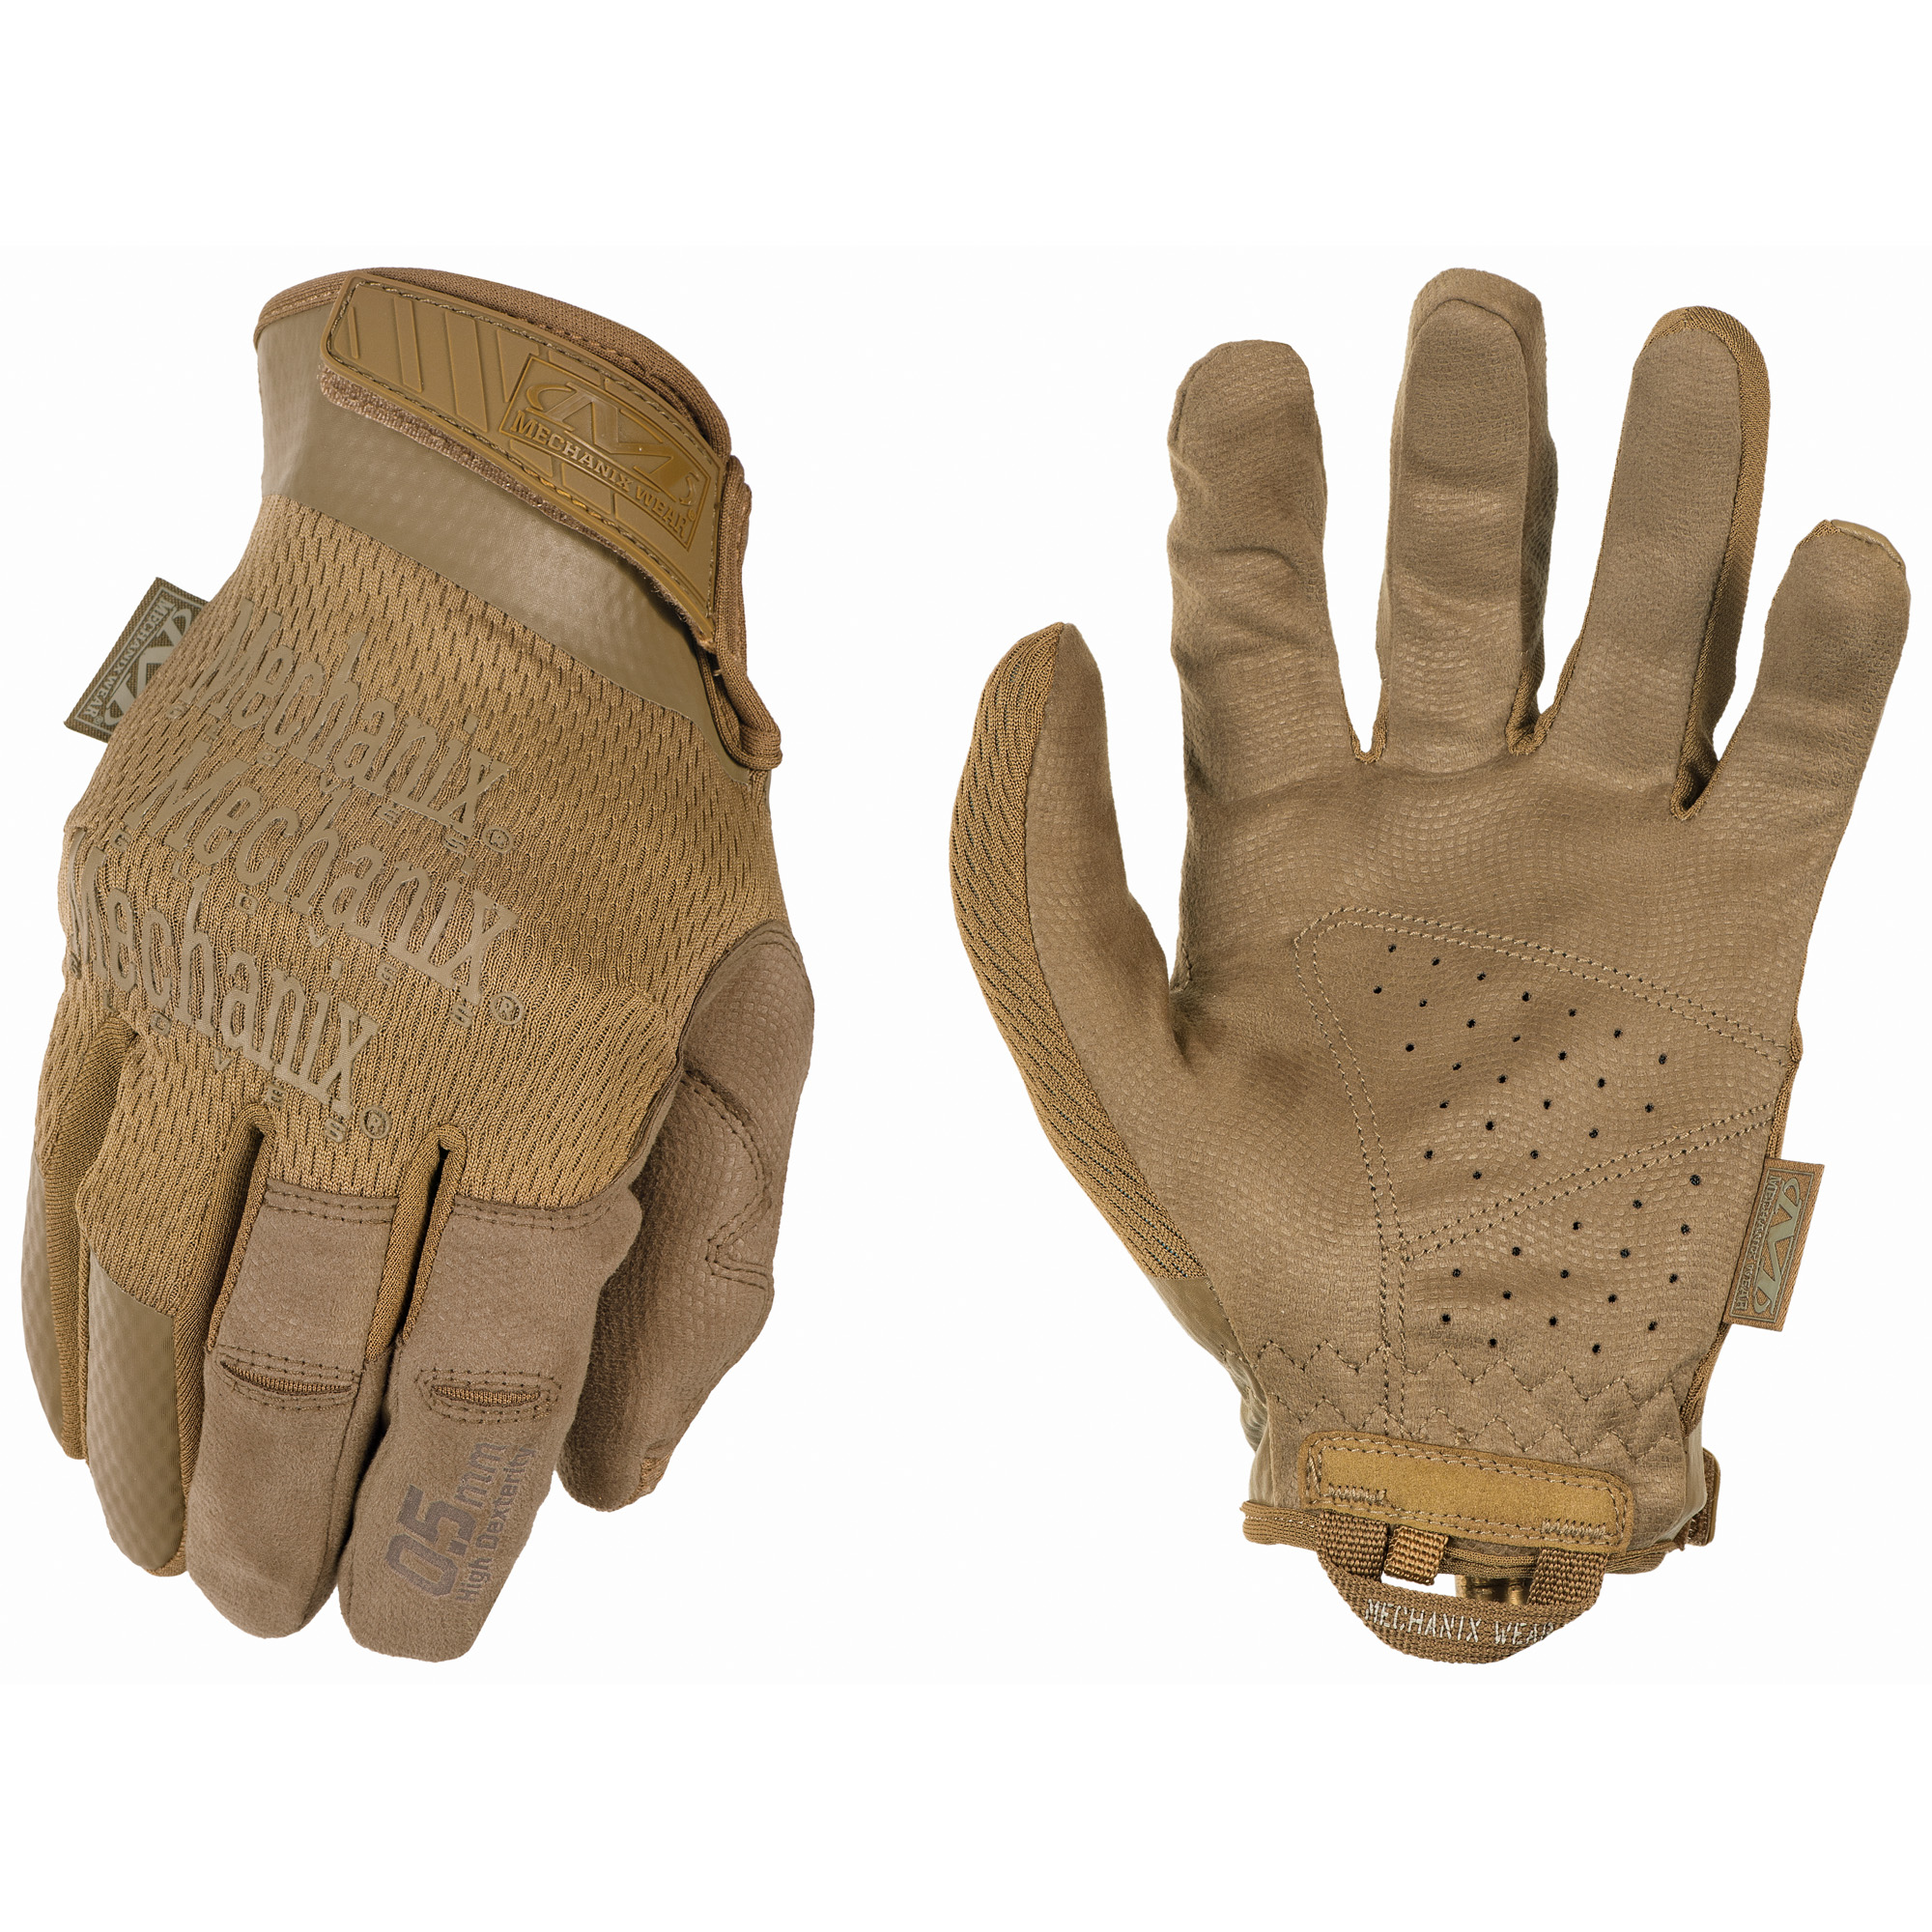 Mechanix Wear Spl 0.5mm Coyote Md